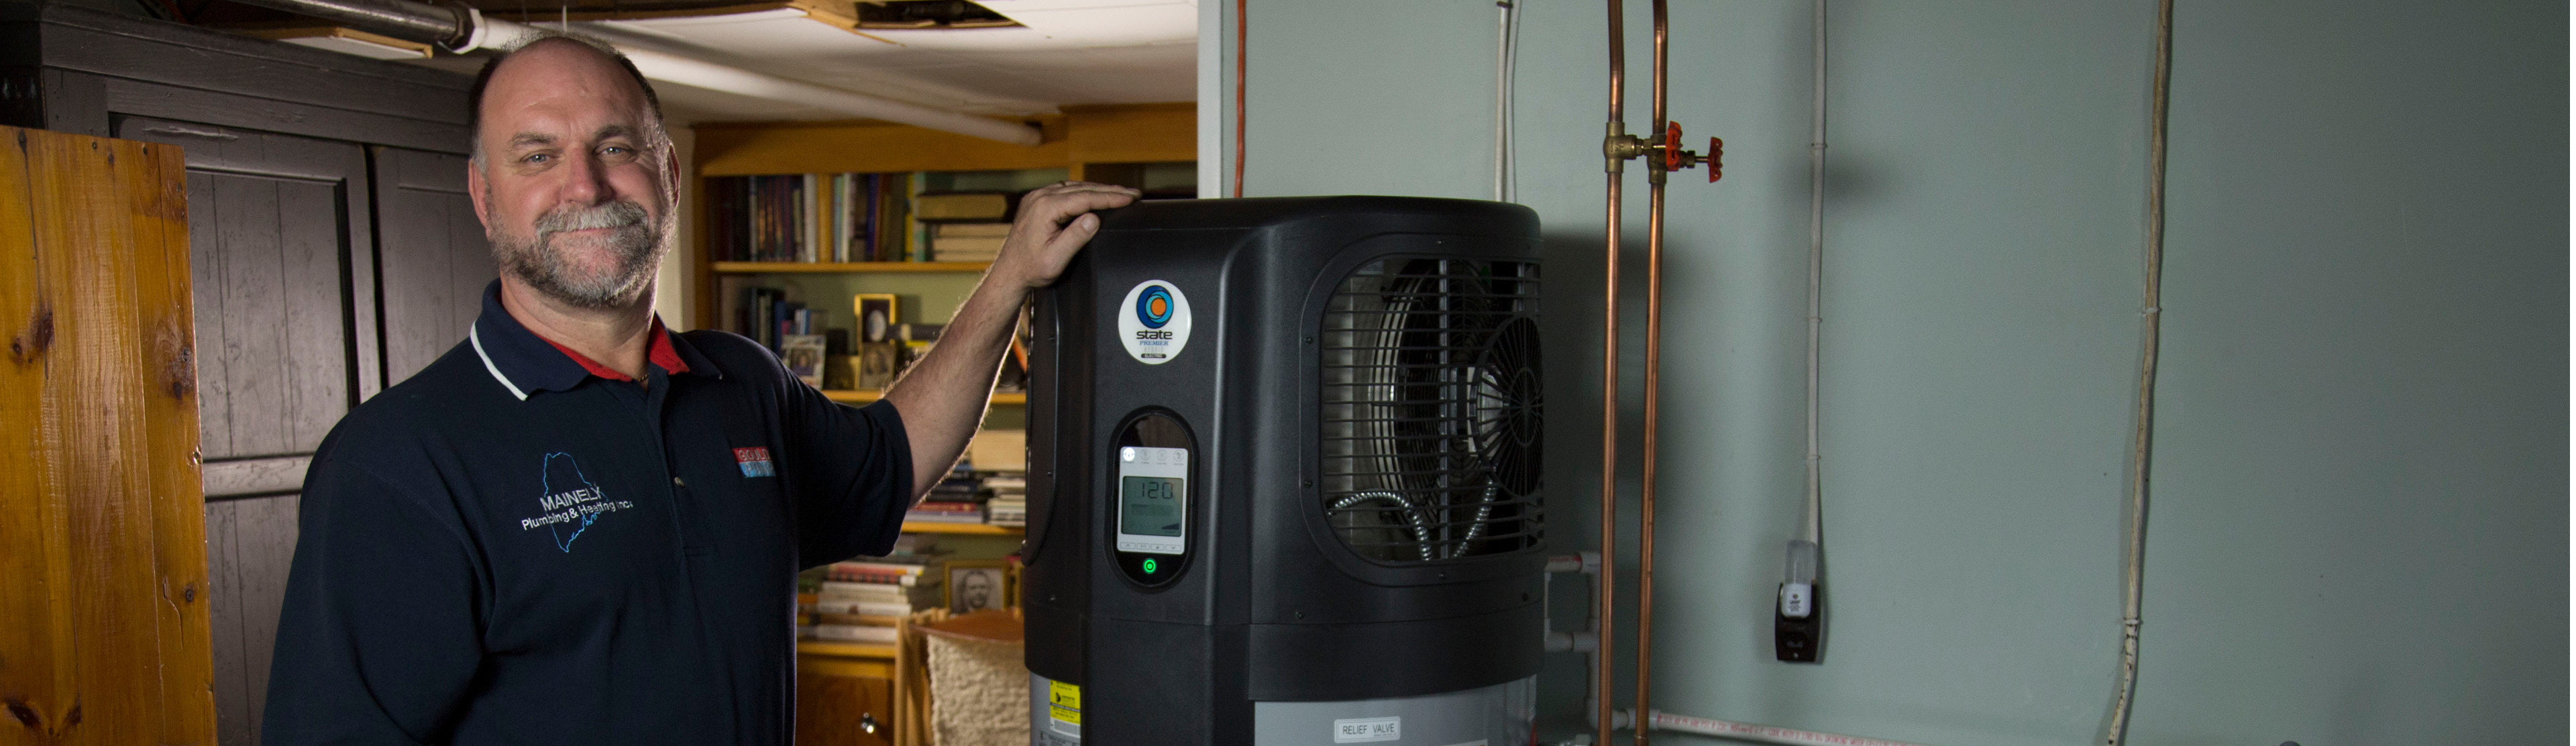 Man standing next to a heat pump water heater